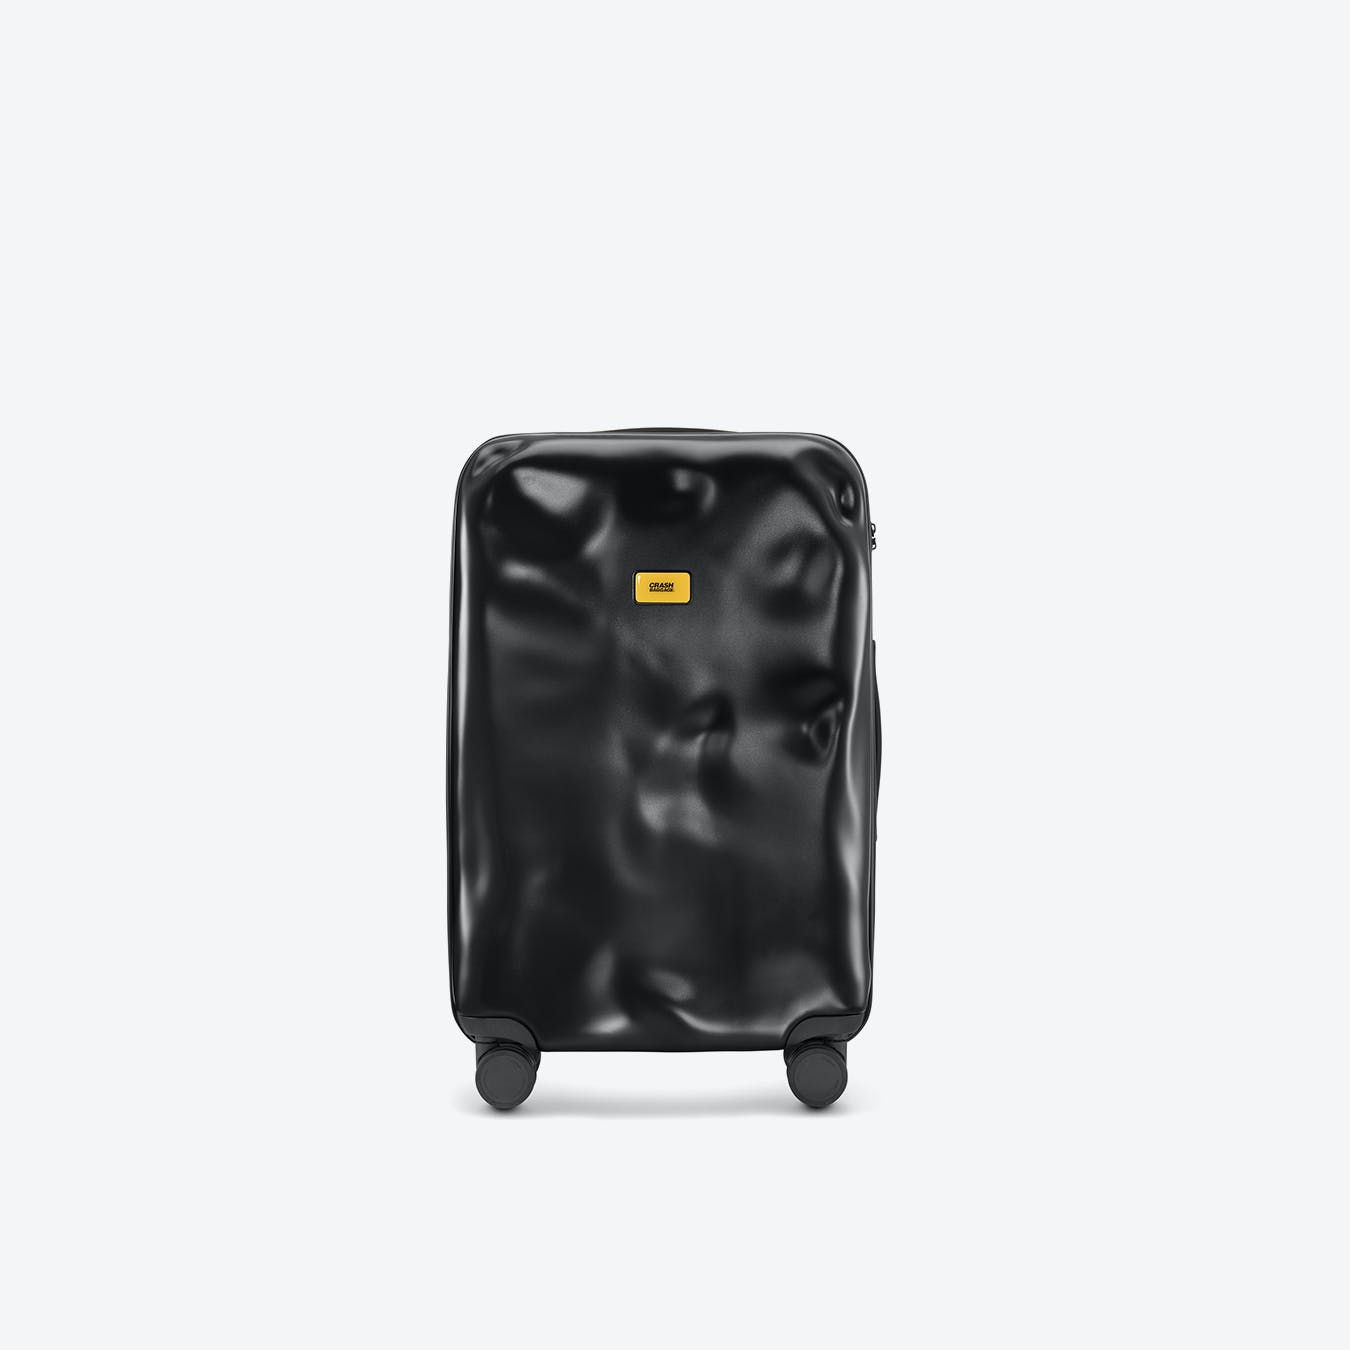 ICON 65L Luggage in Black